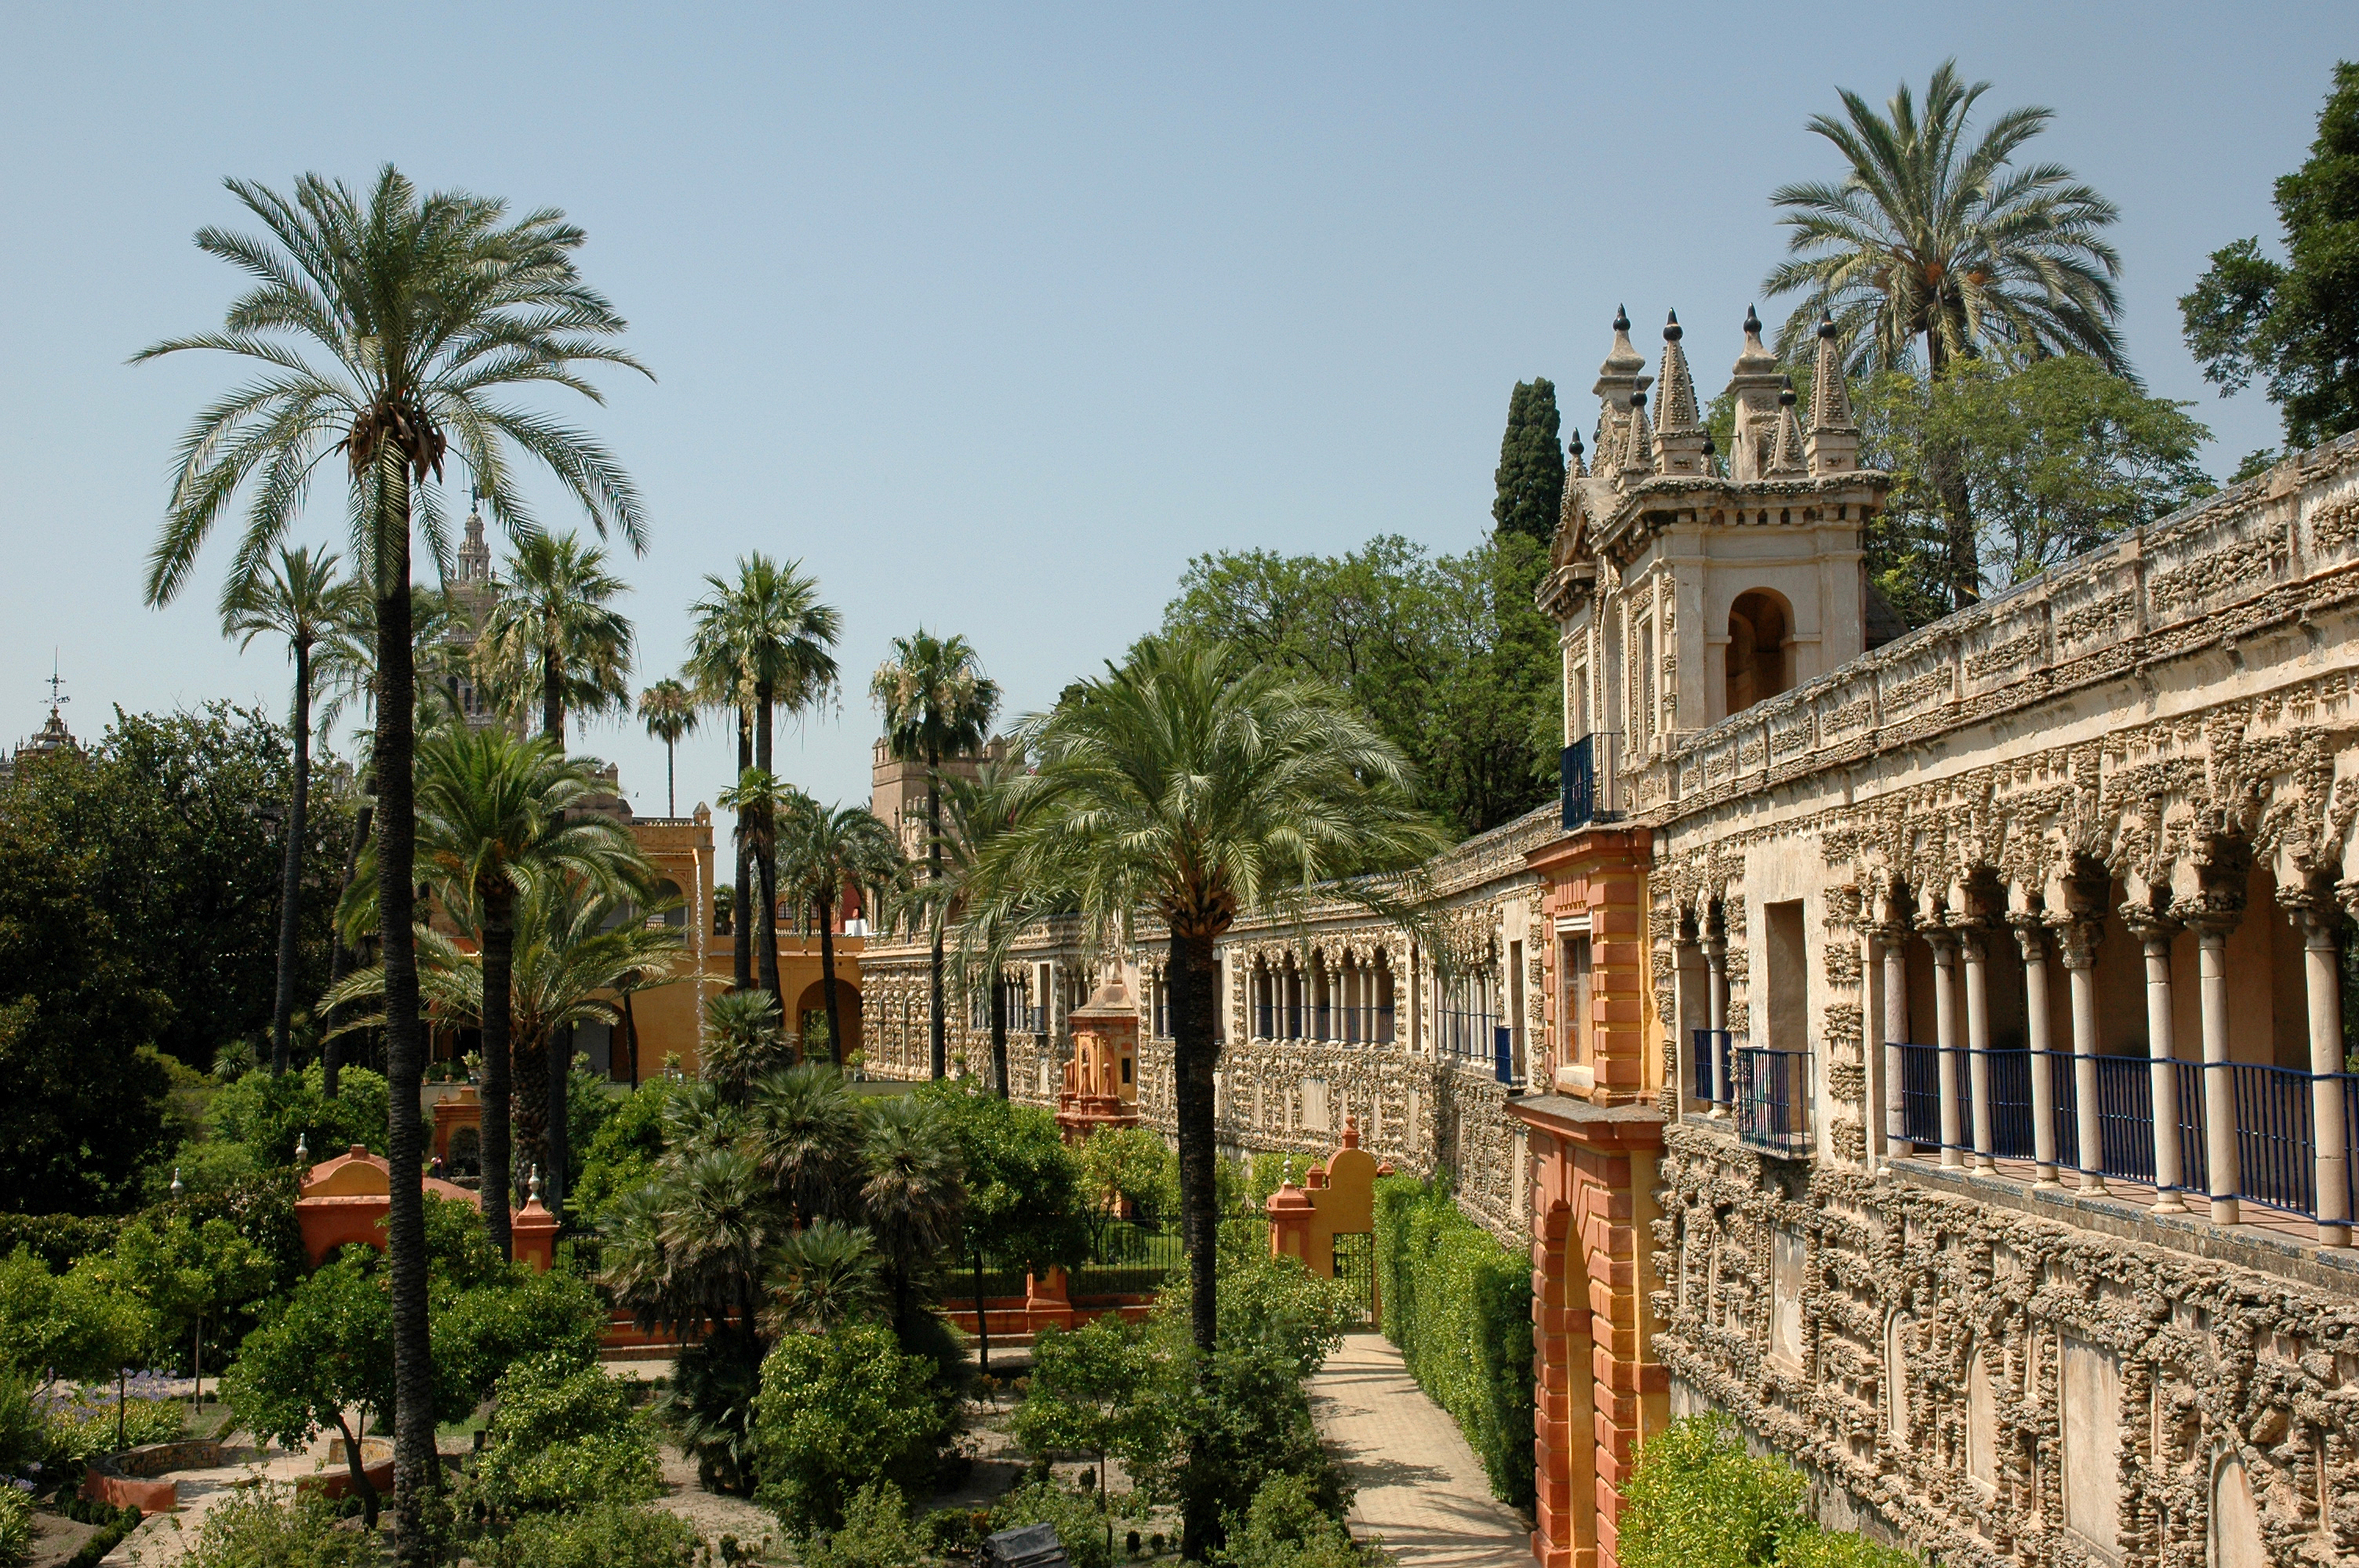 Alcazar Gardens Seville Spain with palm-trees in daylight